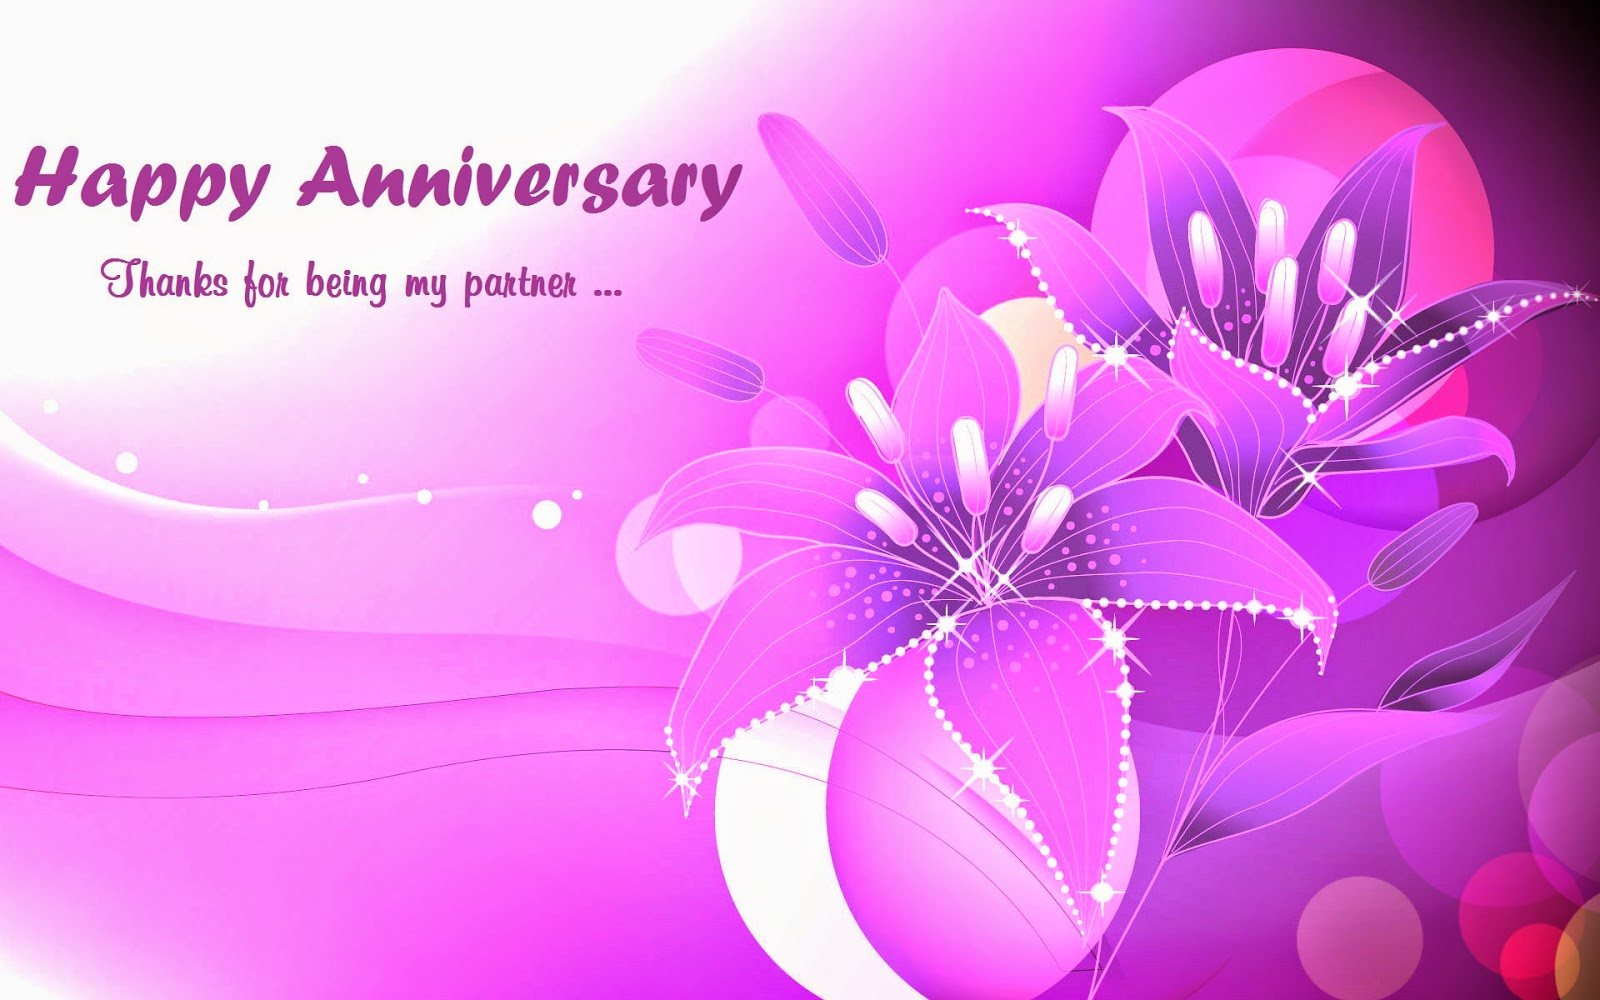 Happy wedding anniversary wishes sms messages for couplesfriends happy wedding anniversary messages sms kristyandbryce Images